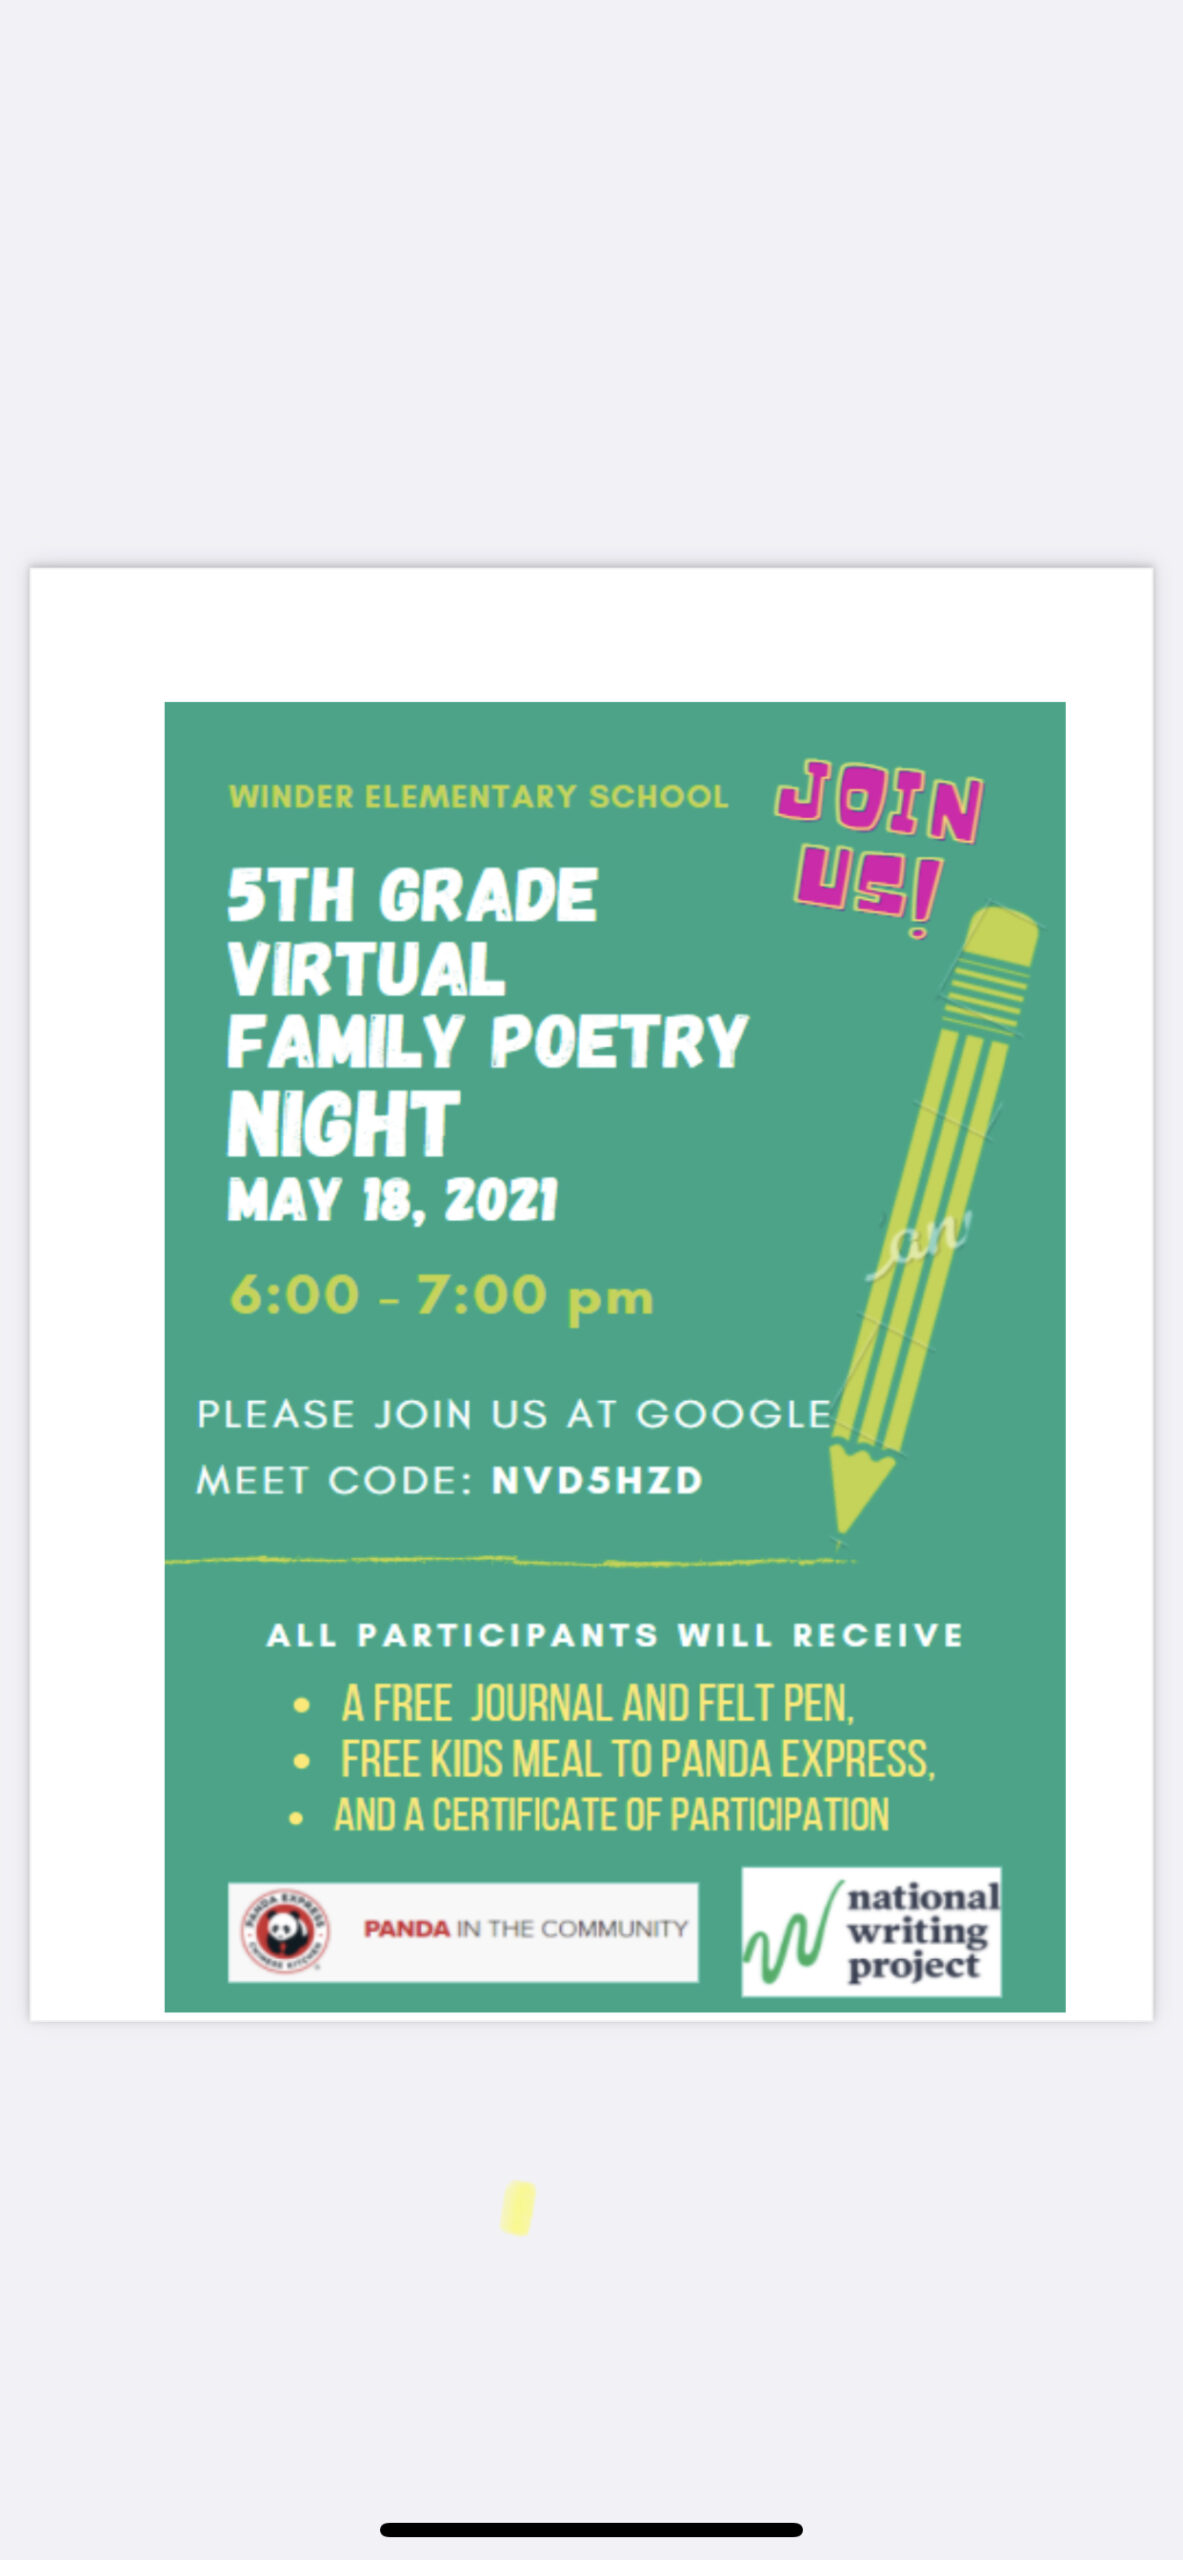 WES Family Poetry Night 2021